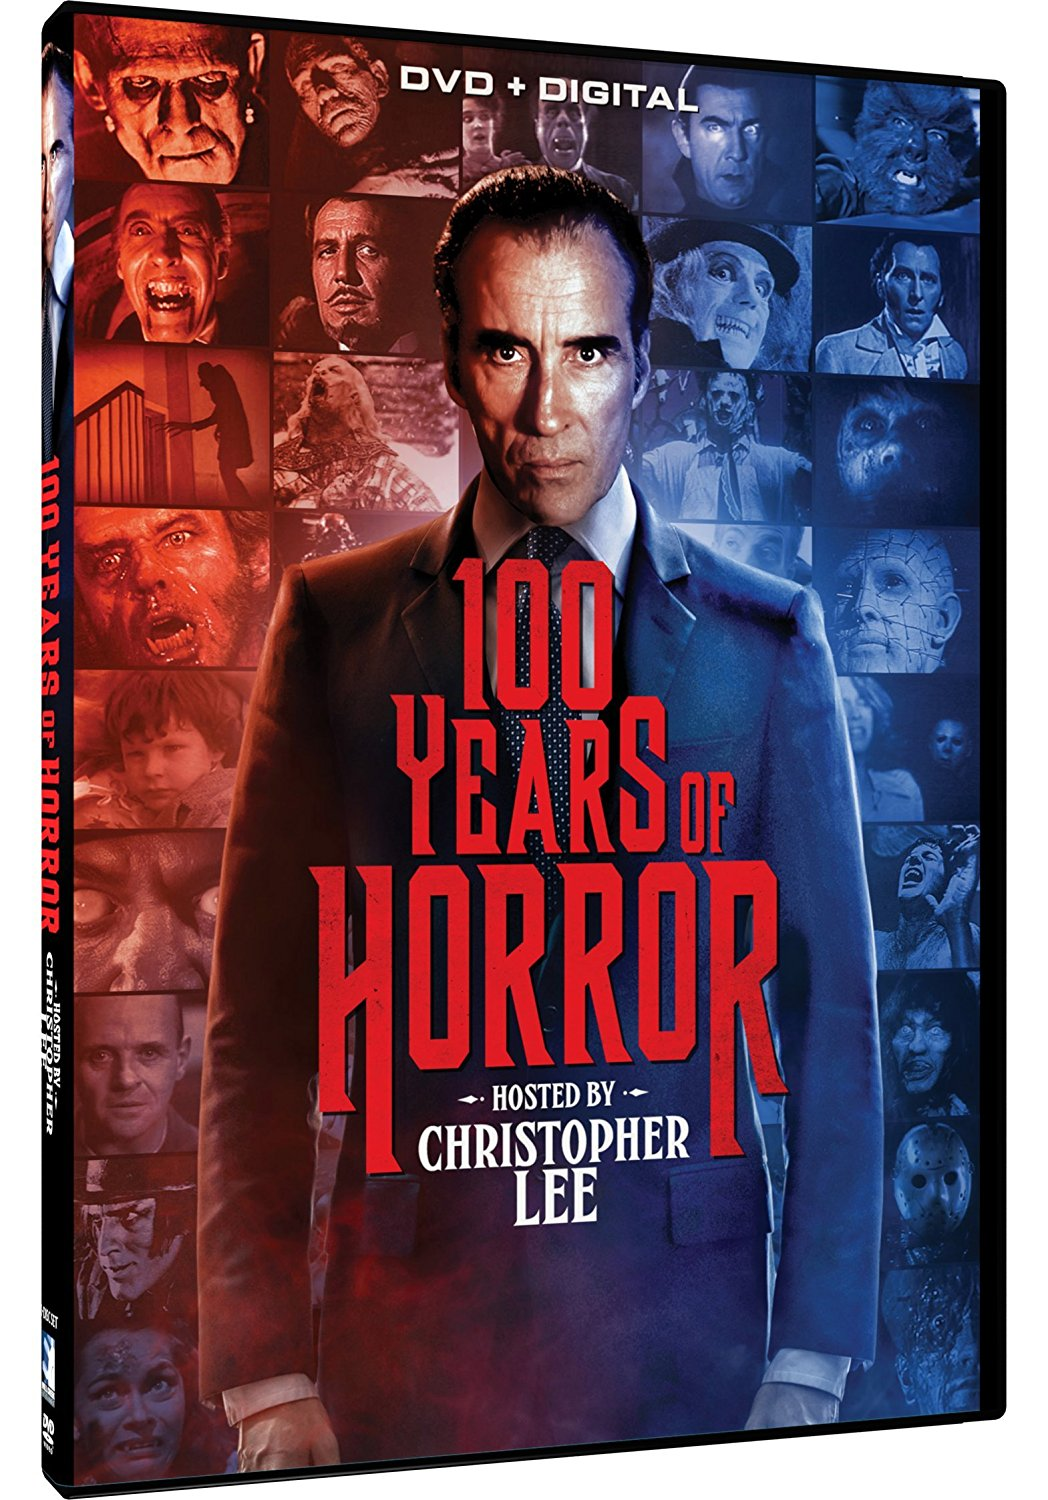 Christopher Lee-Hosted Series